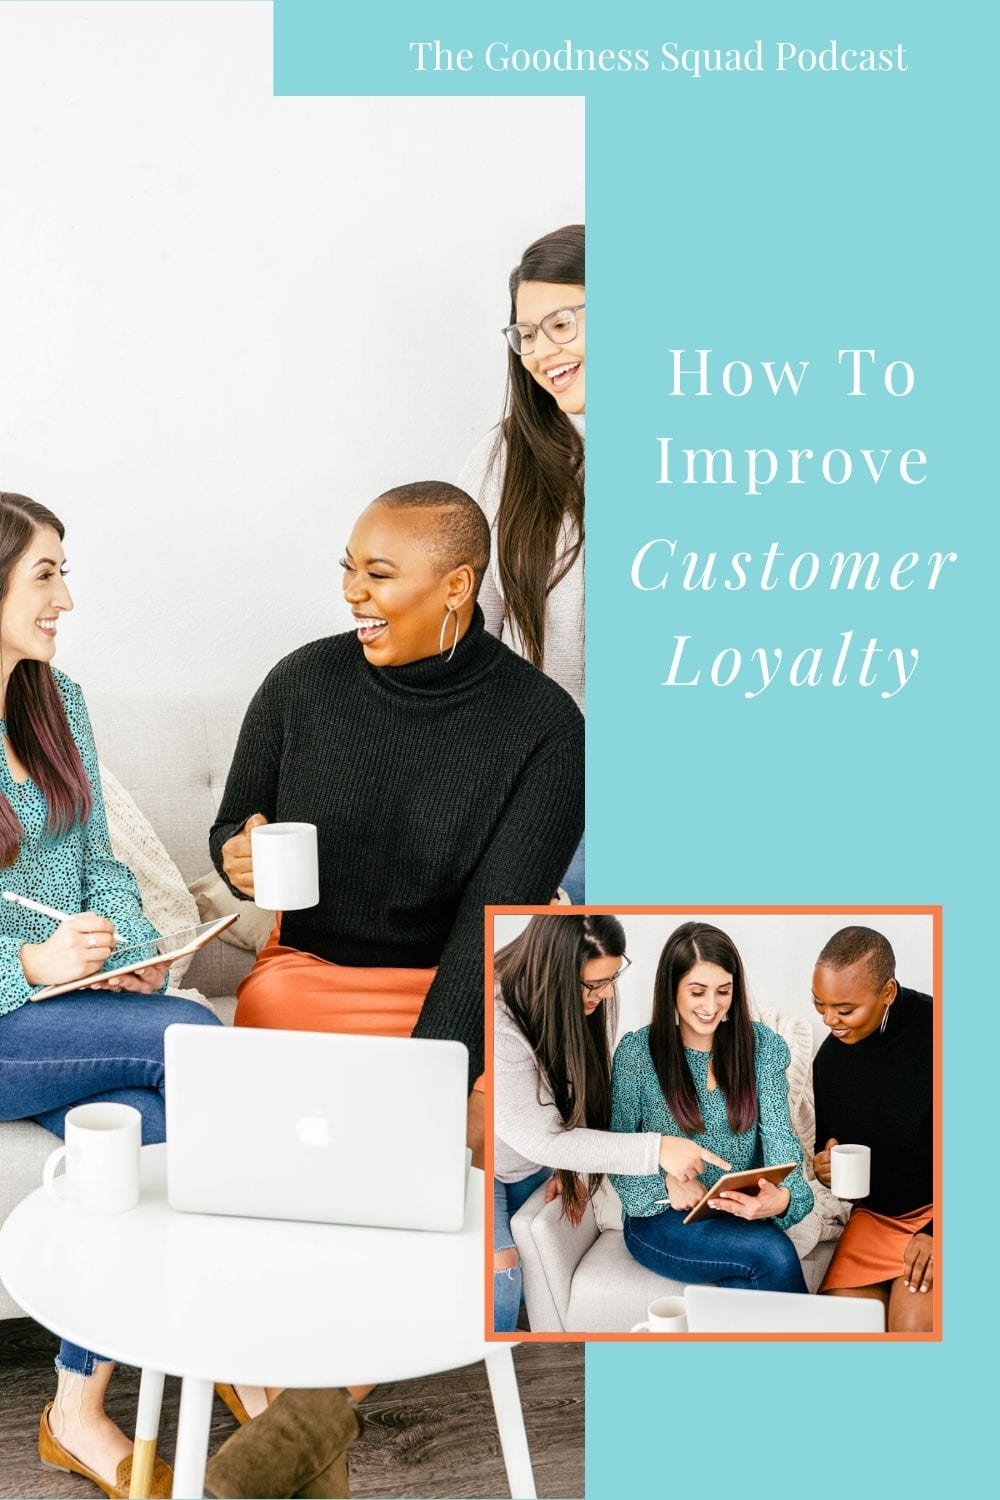 09_The simple, but neglected, key for building loyal customers